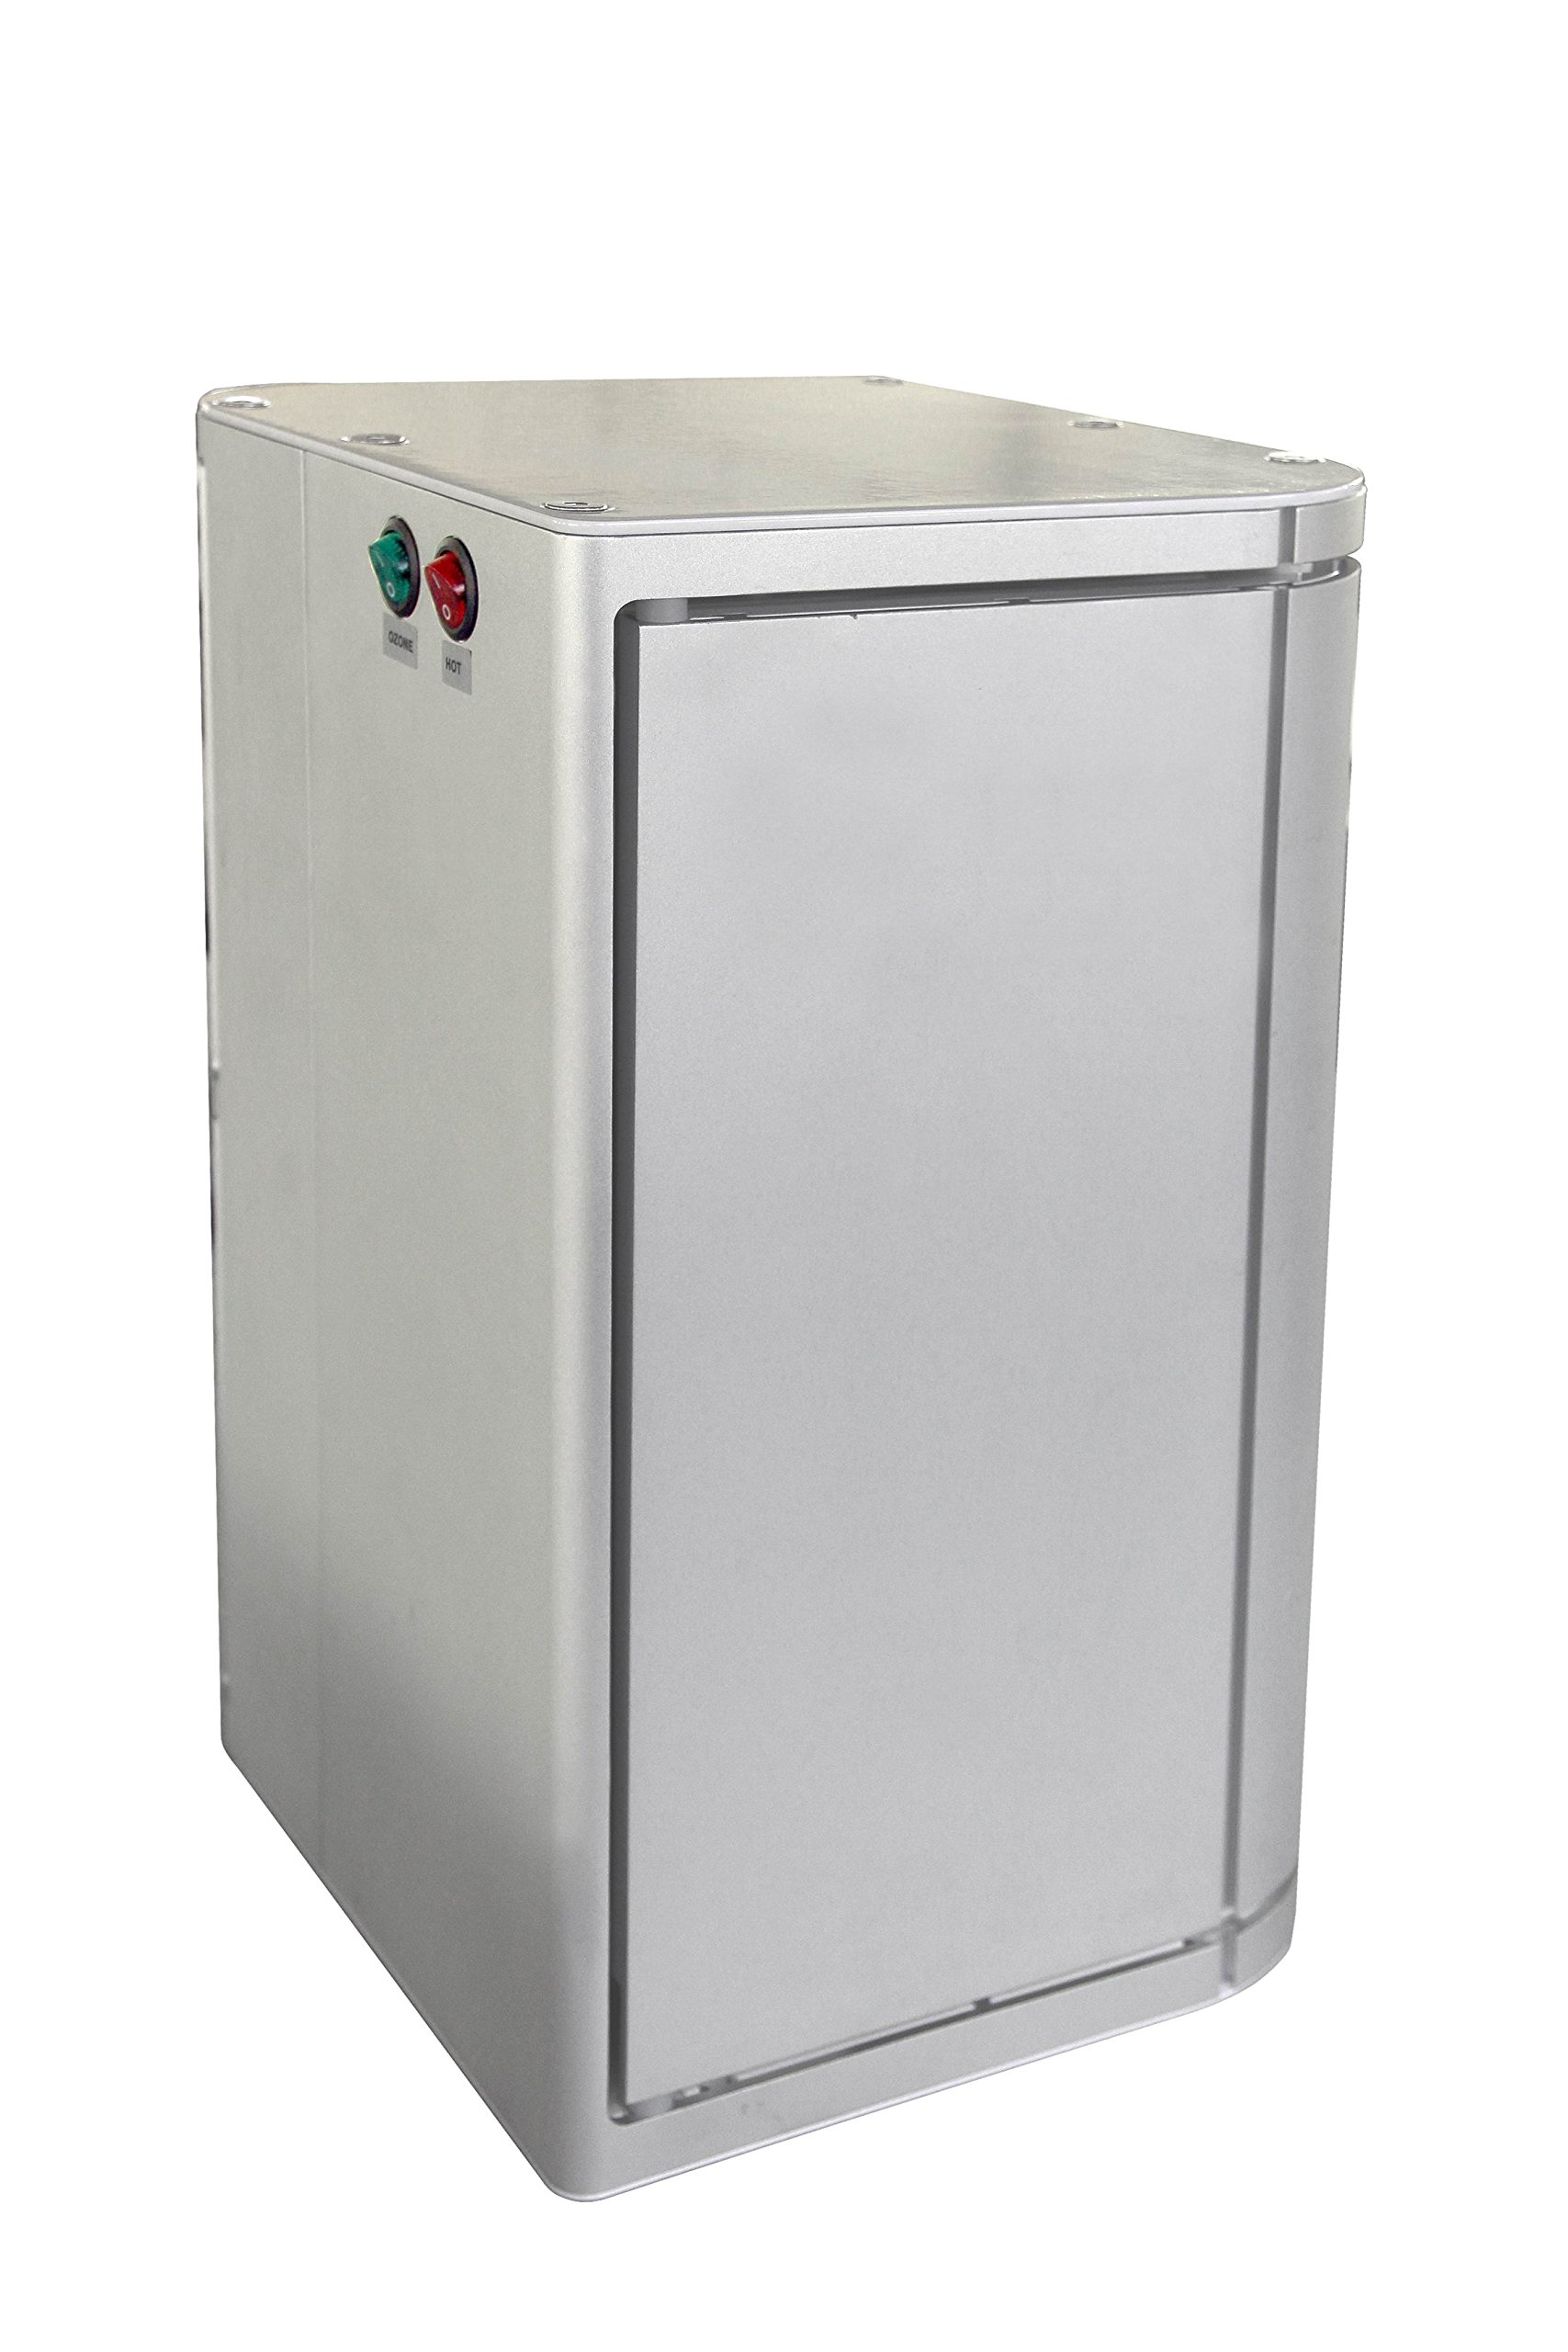 ELITE-12 pc Aluminum Hot Towel Cabinet w/ UV Sterilizer